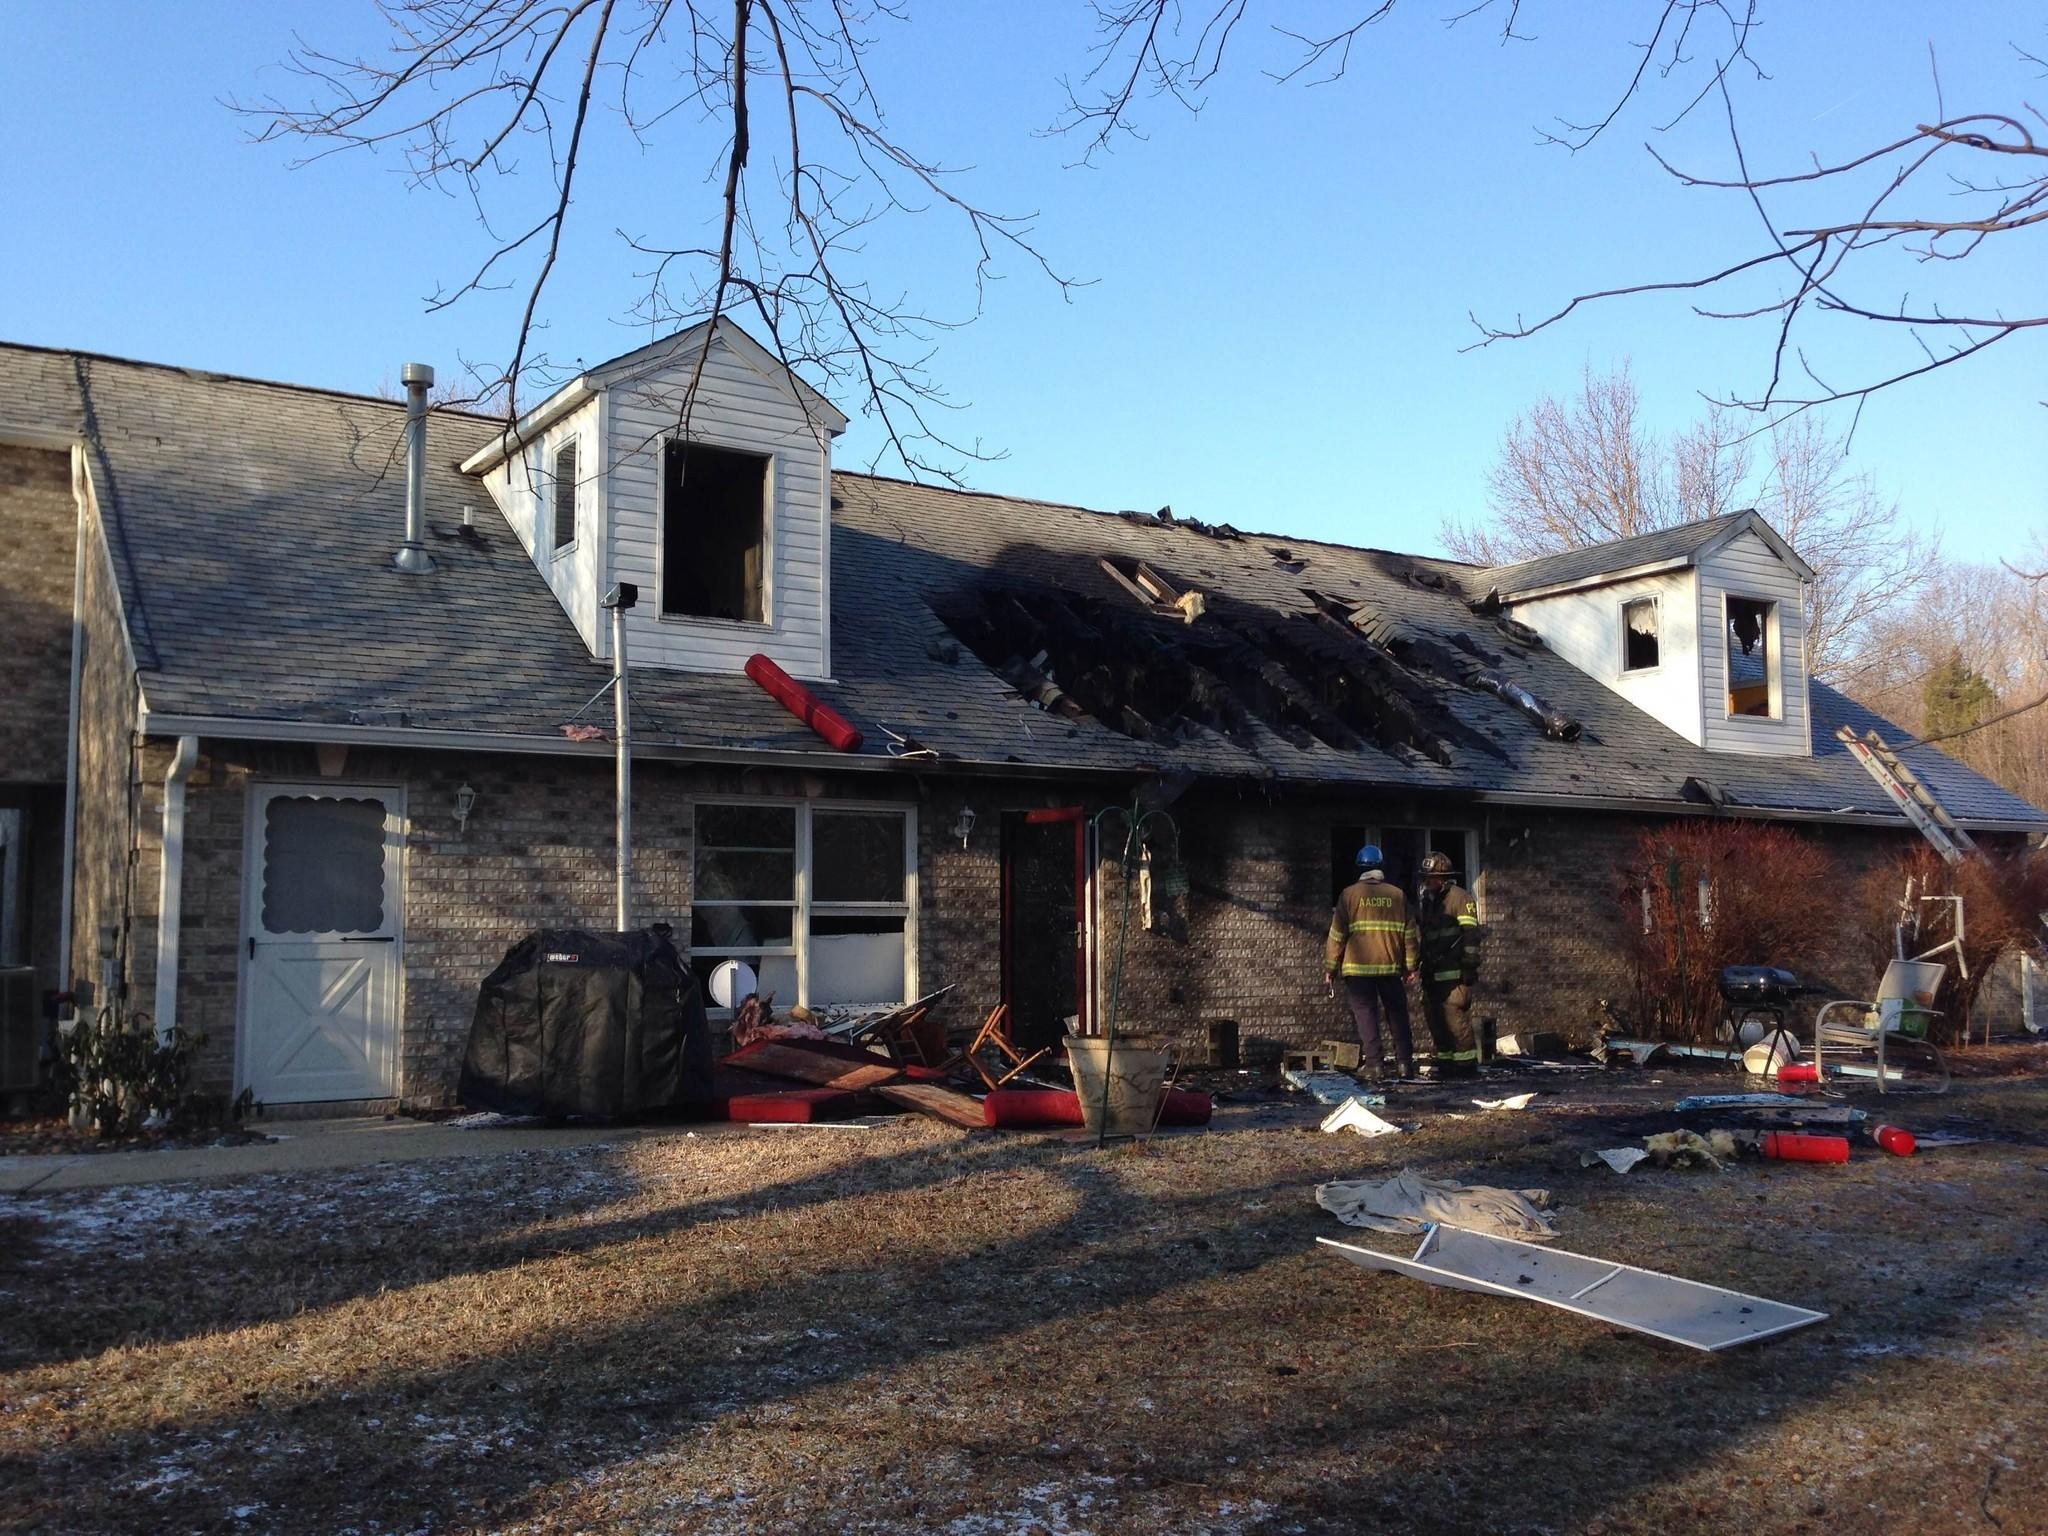 Anne Arundel County firefighters responded to a blaze Tuesday morning at a home on Meyers Station Road in Odenton.